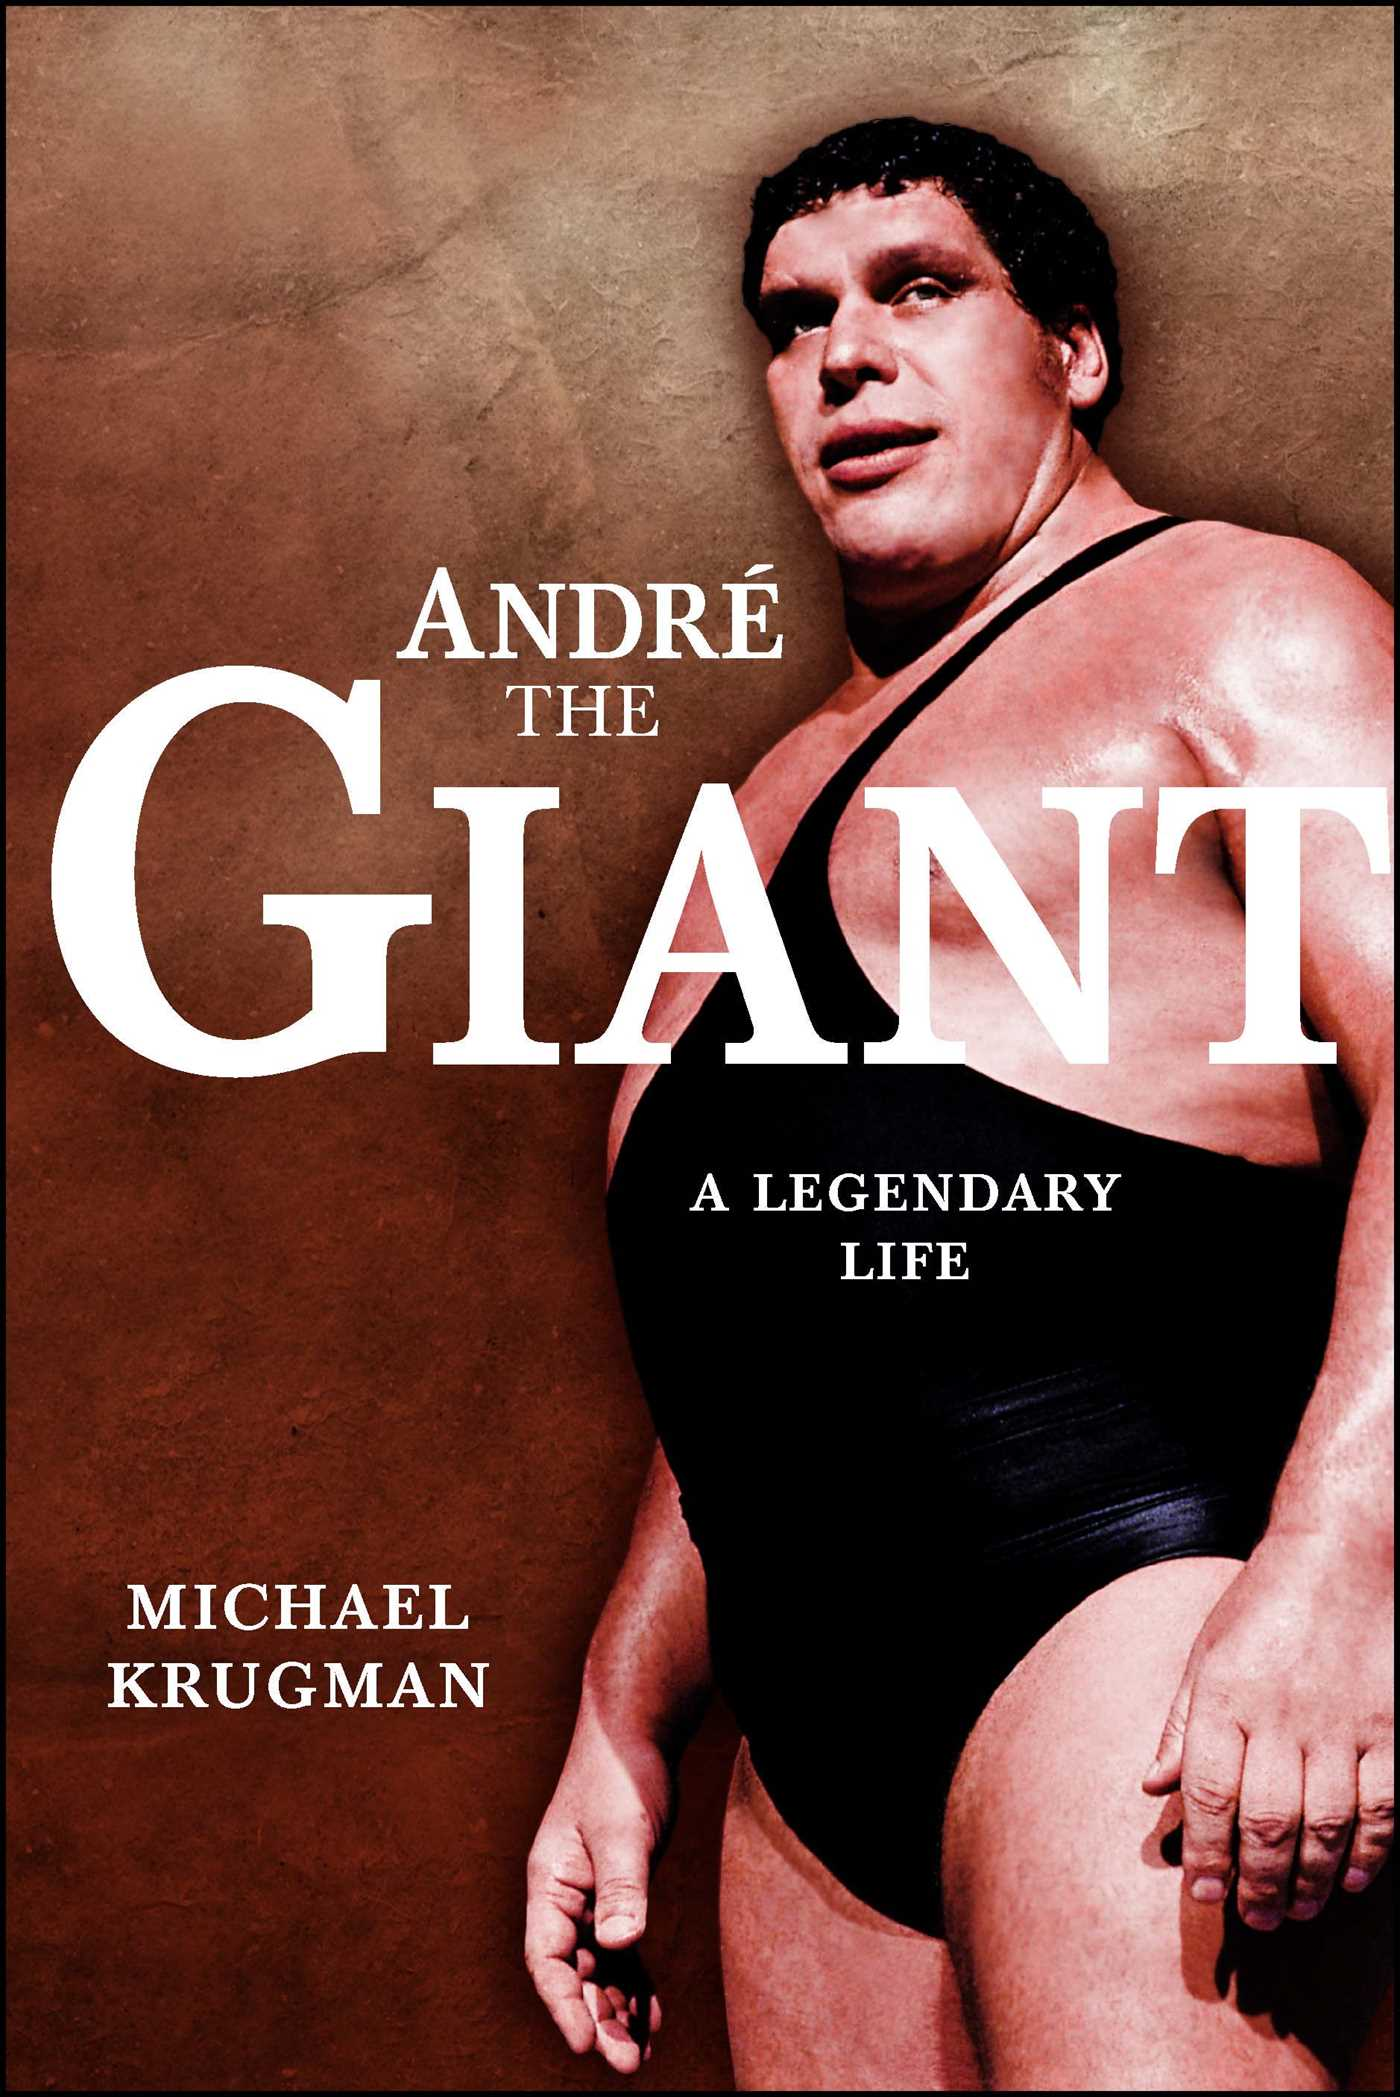 Andre-the-giant-9781416541127_hr